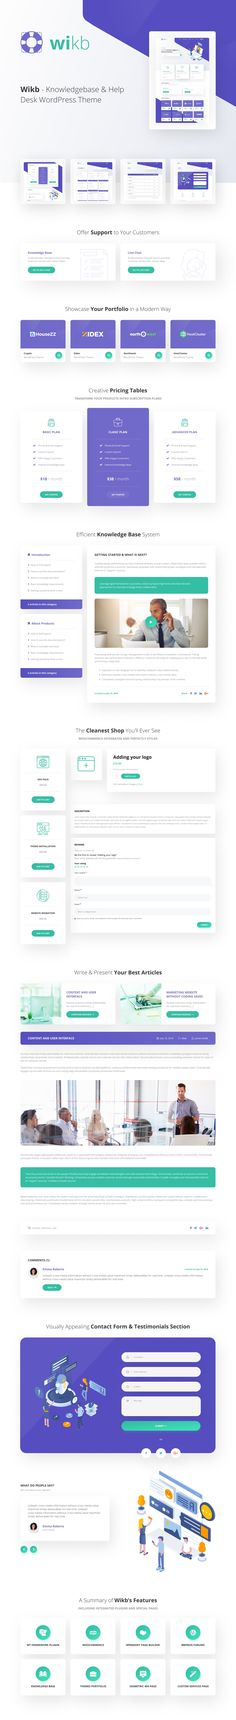 Wikb - Knowledgebase & Help Desk WP Theme by modeltheme Help Desk, Things To Come, Social Media, Digital, Social Networks, Social Media Tips